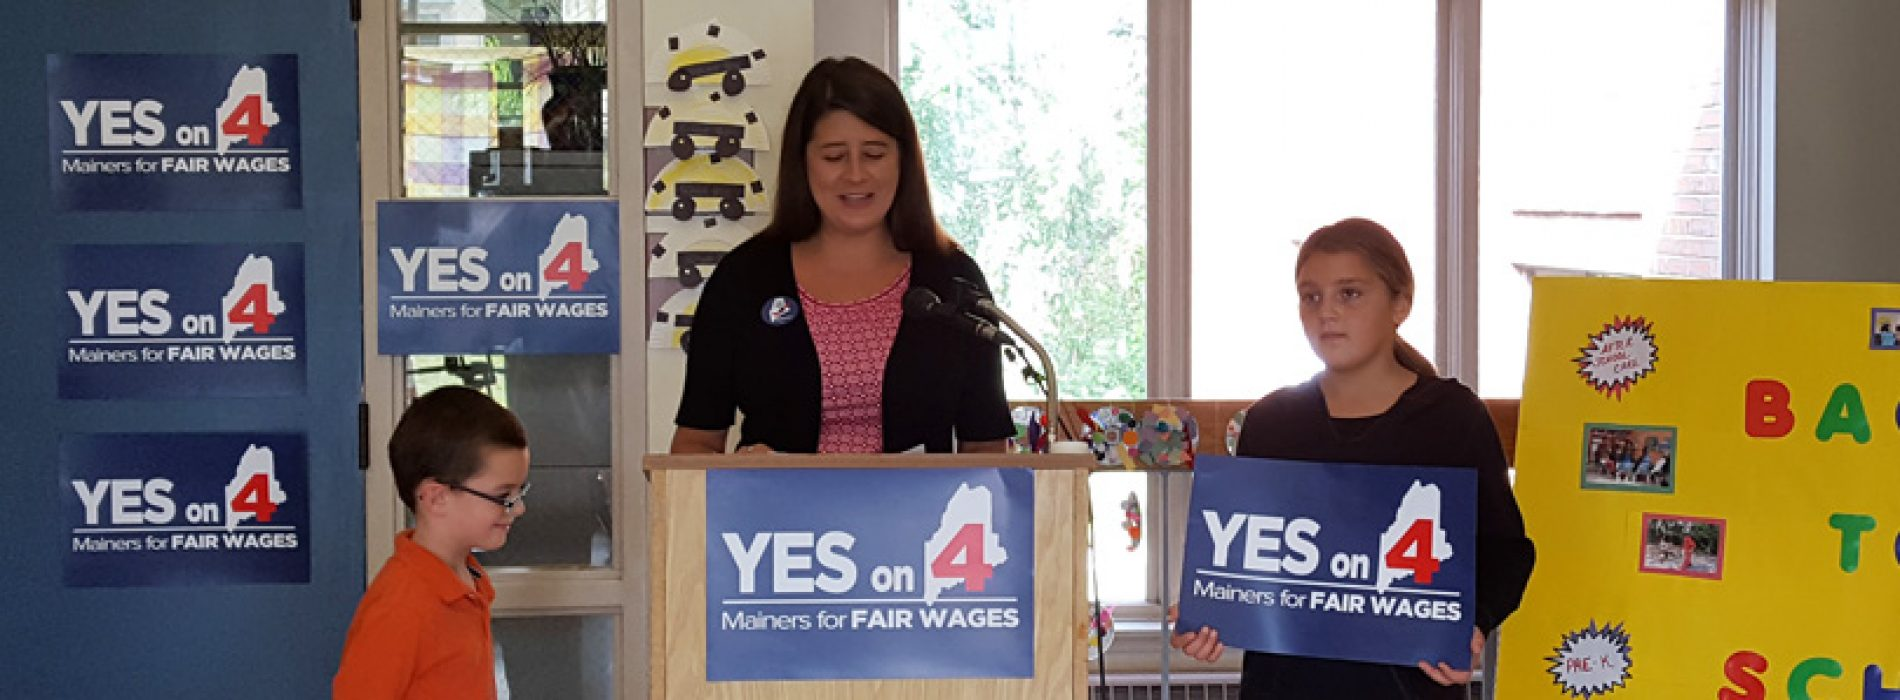 Press Herald poll: Minimum wage question has a 32-point lead